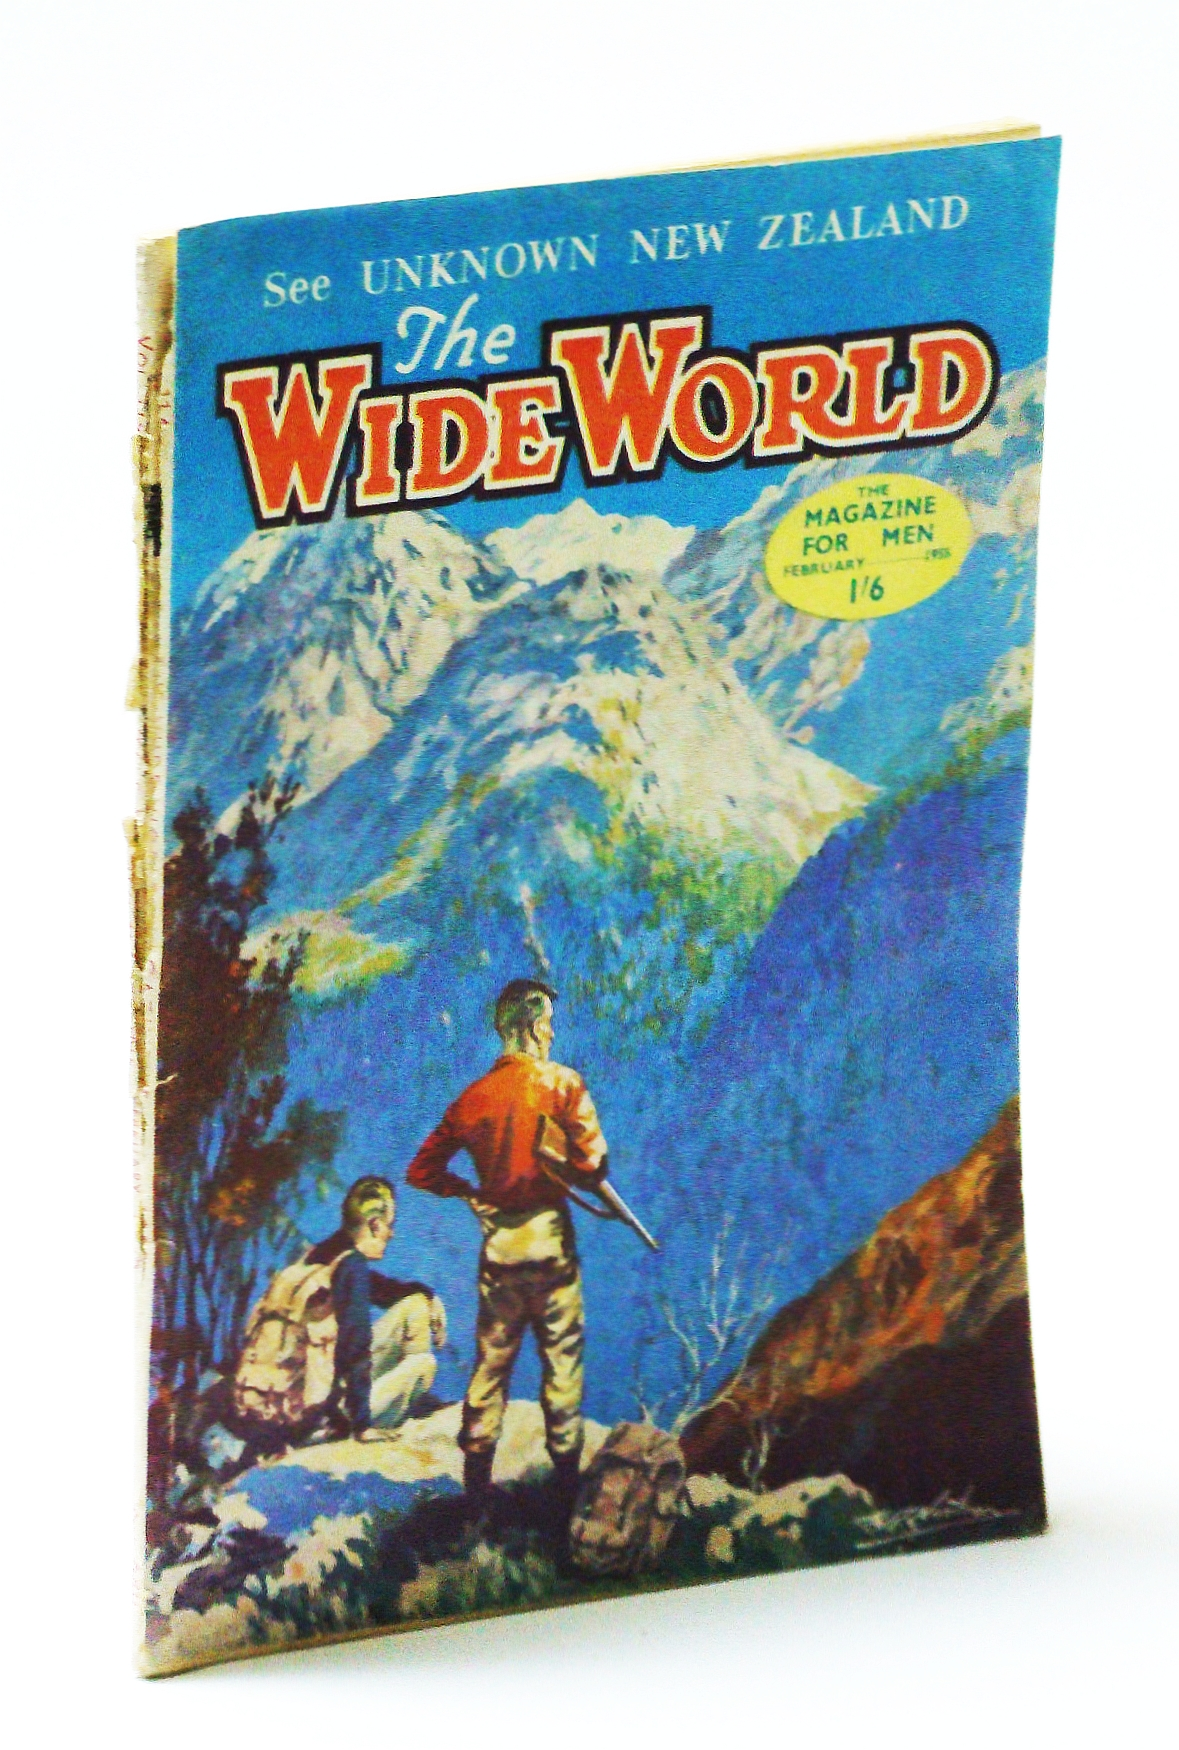 Image for The Wide World Magazine - February 1955 Vol.114, No.680